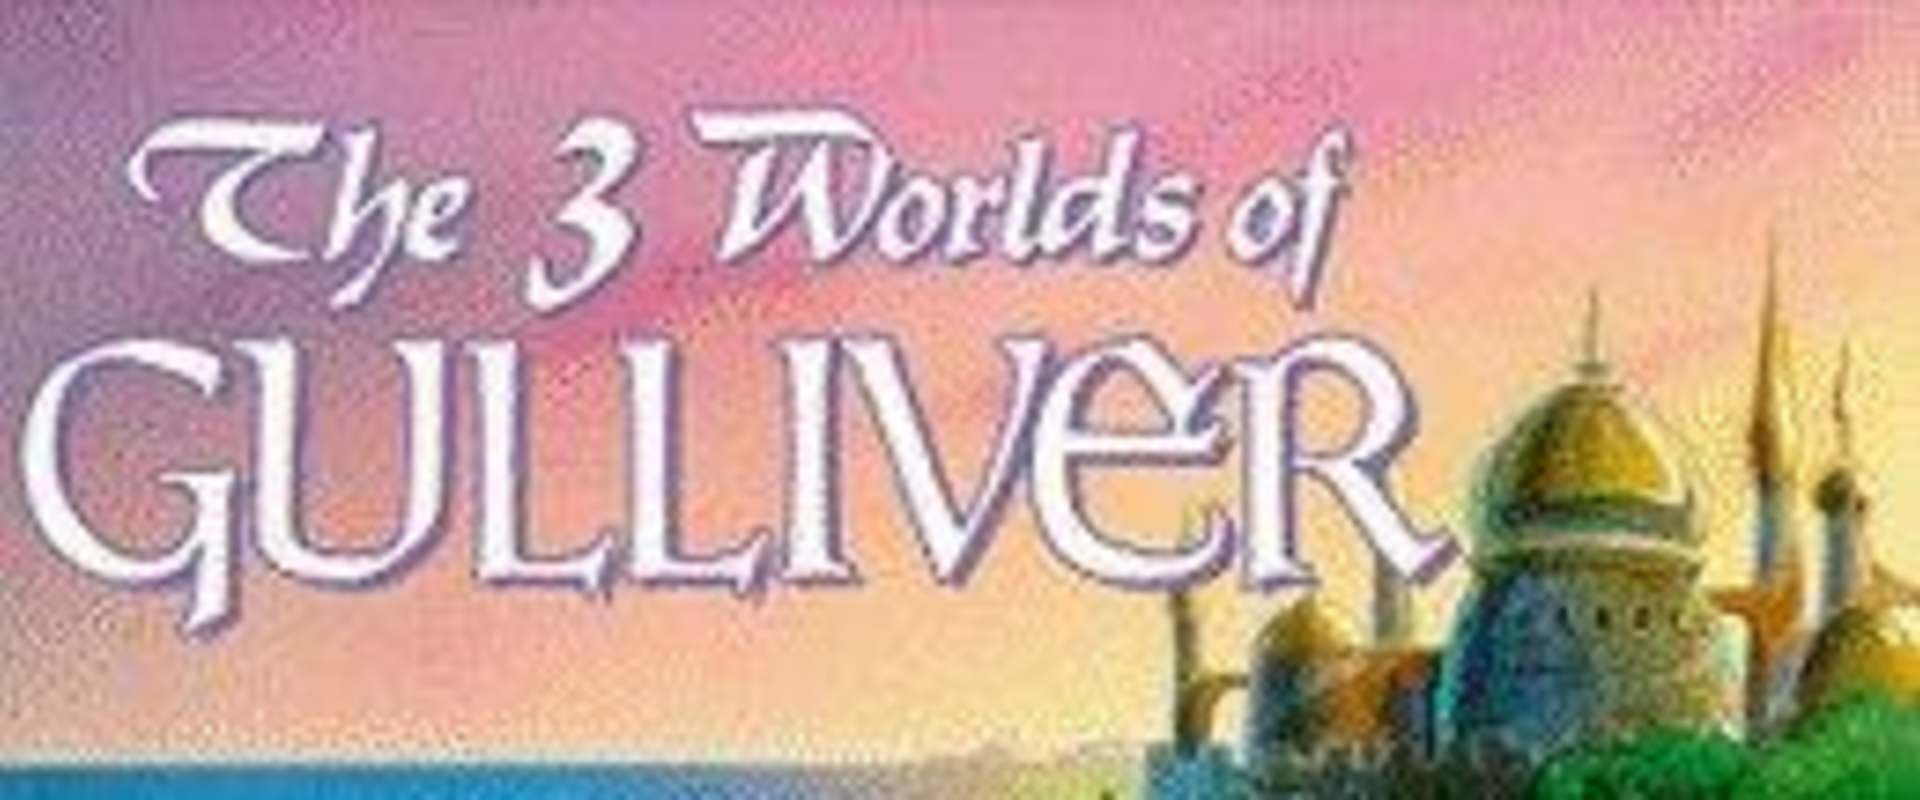 The 3 Worlds of Gulliver background 1